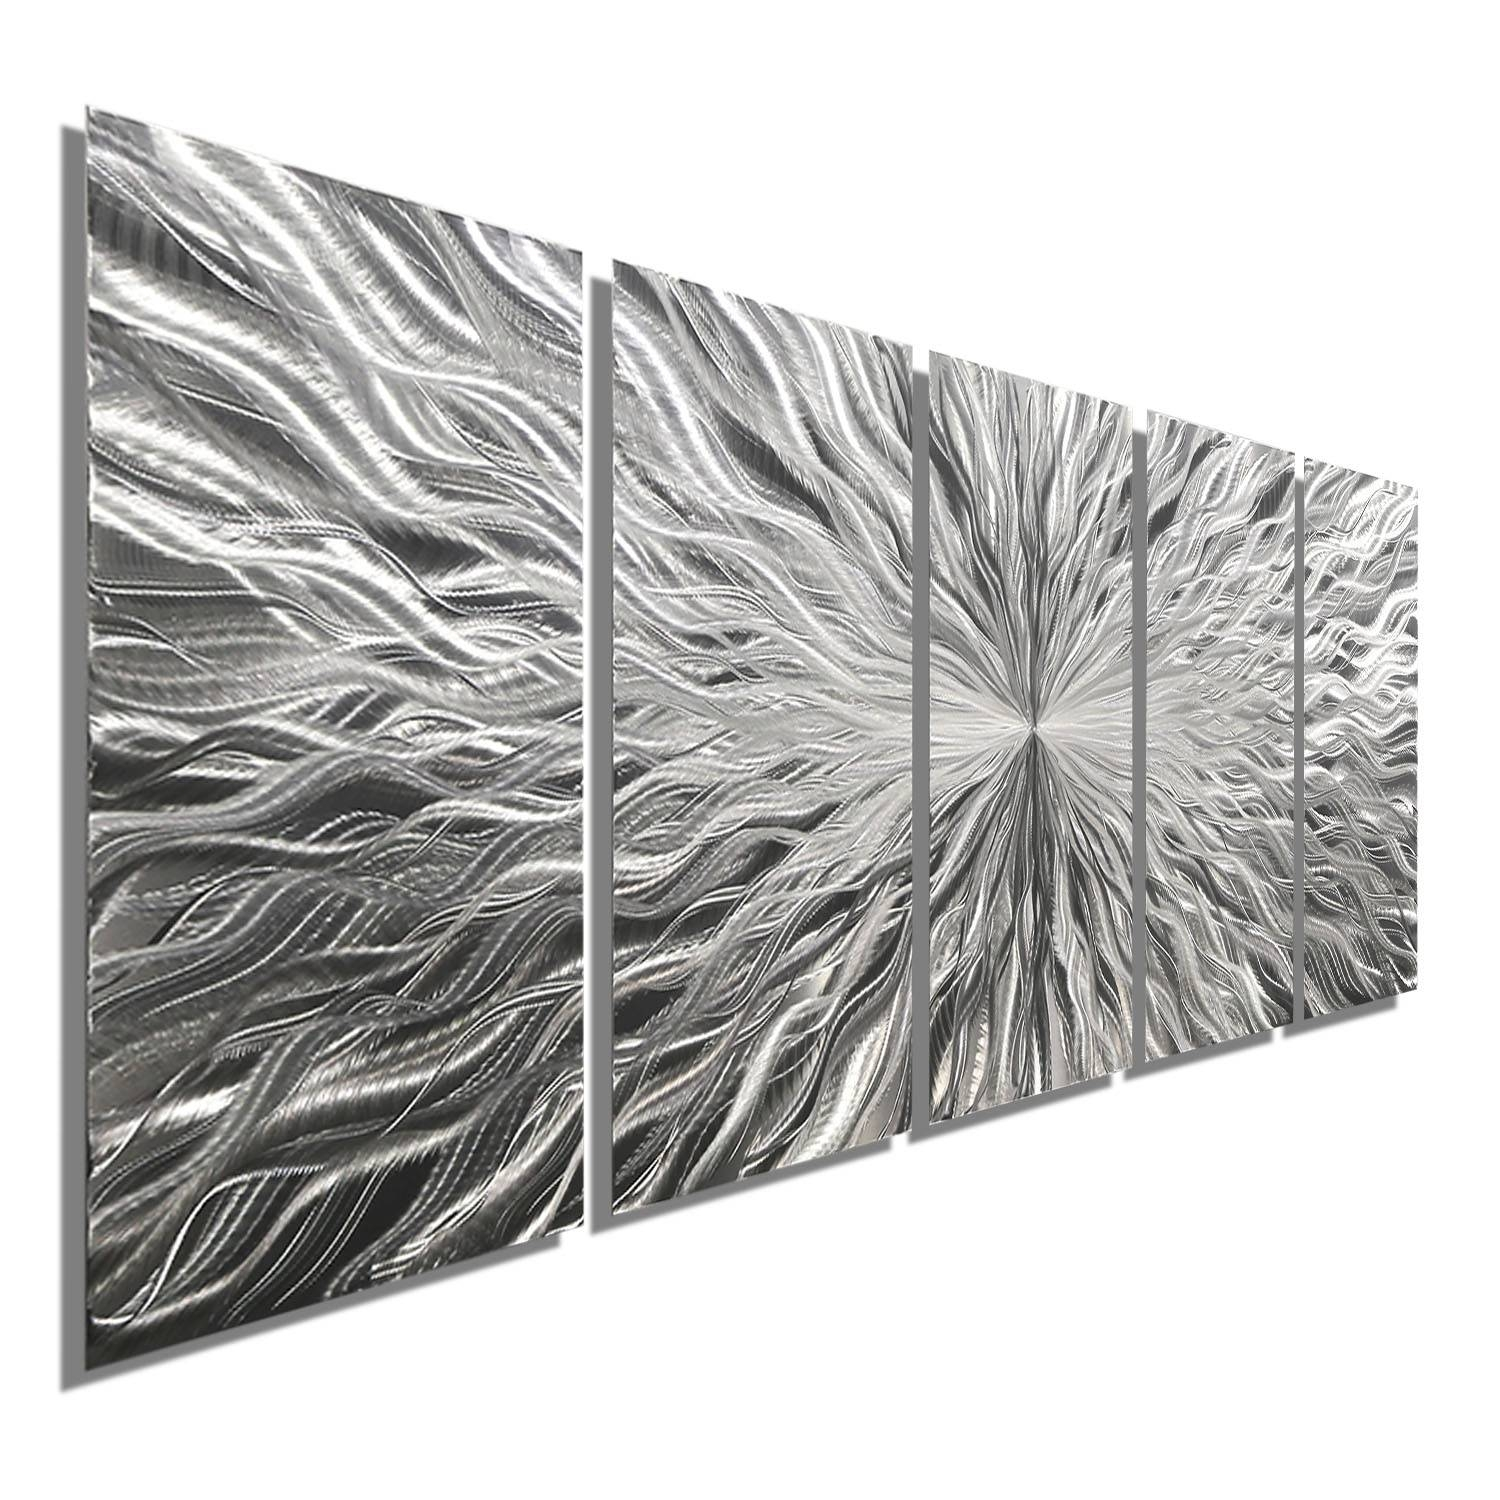 Vortex 5 – Five Panel Silver Modern Abstract Metal Wall Artjon Within Current 3 Piece Metal Wall Art (View 13 of 20)